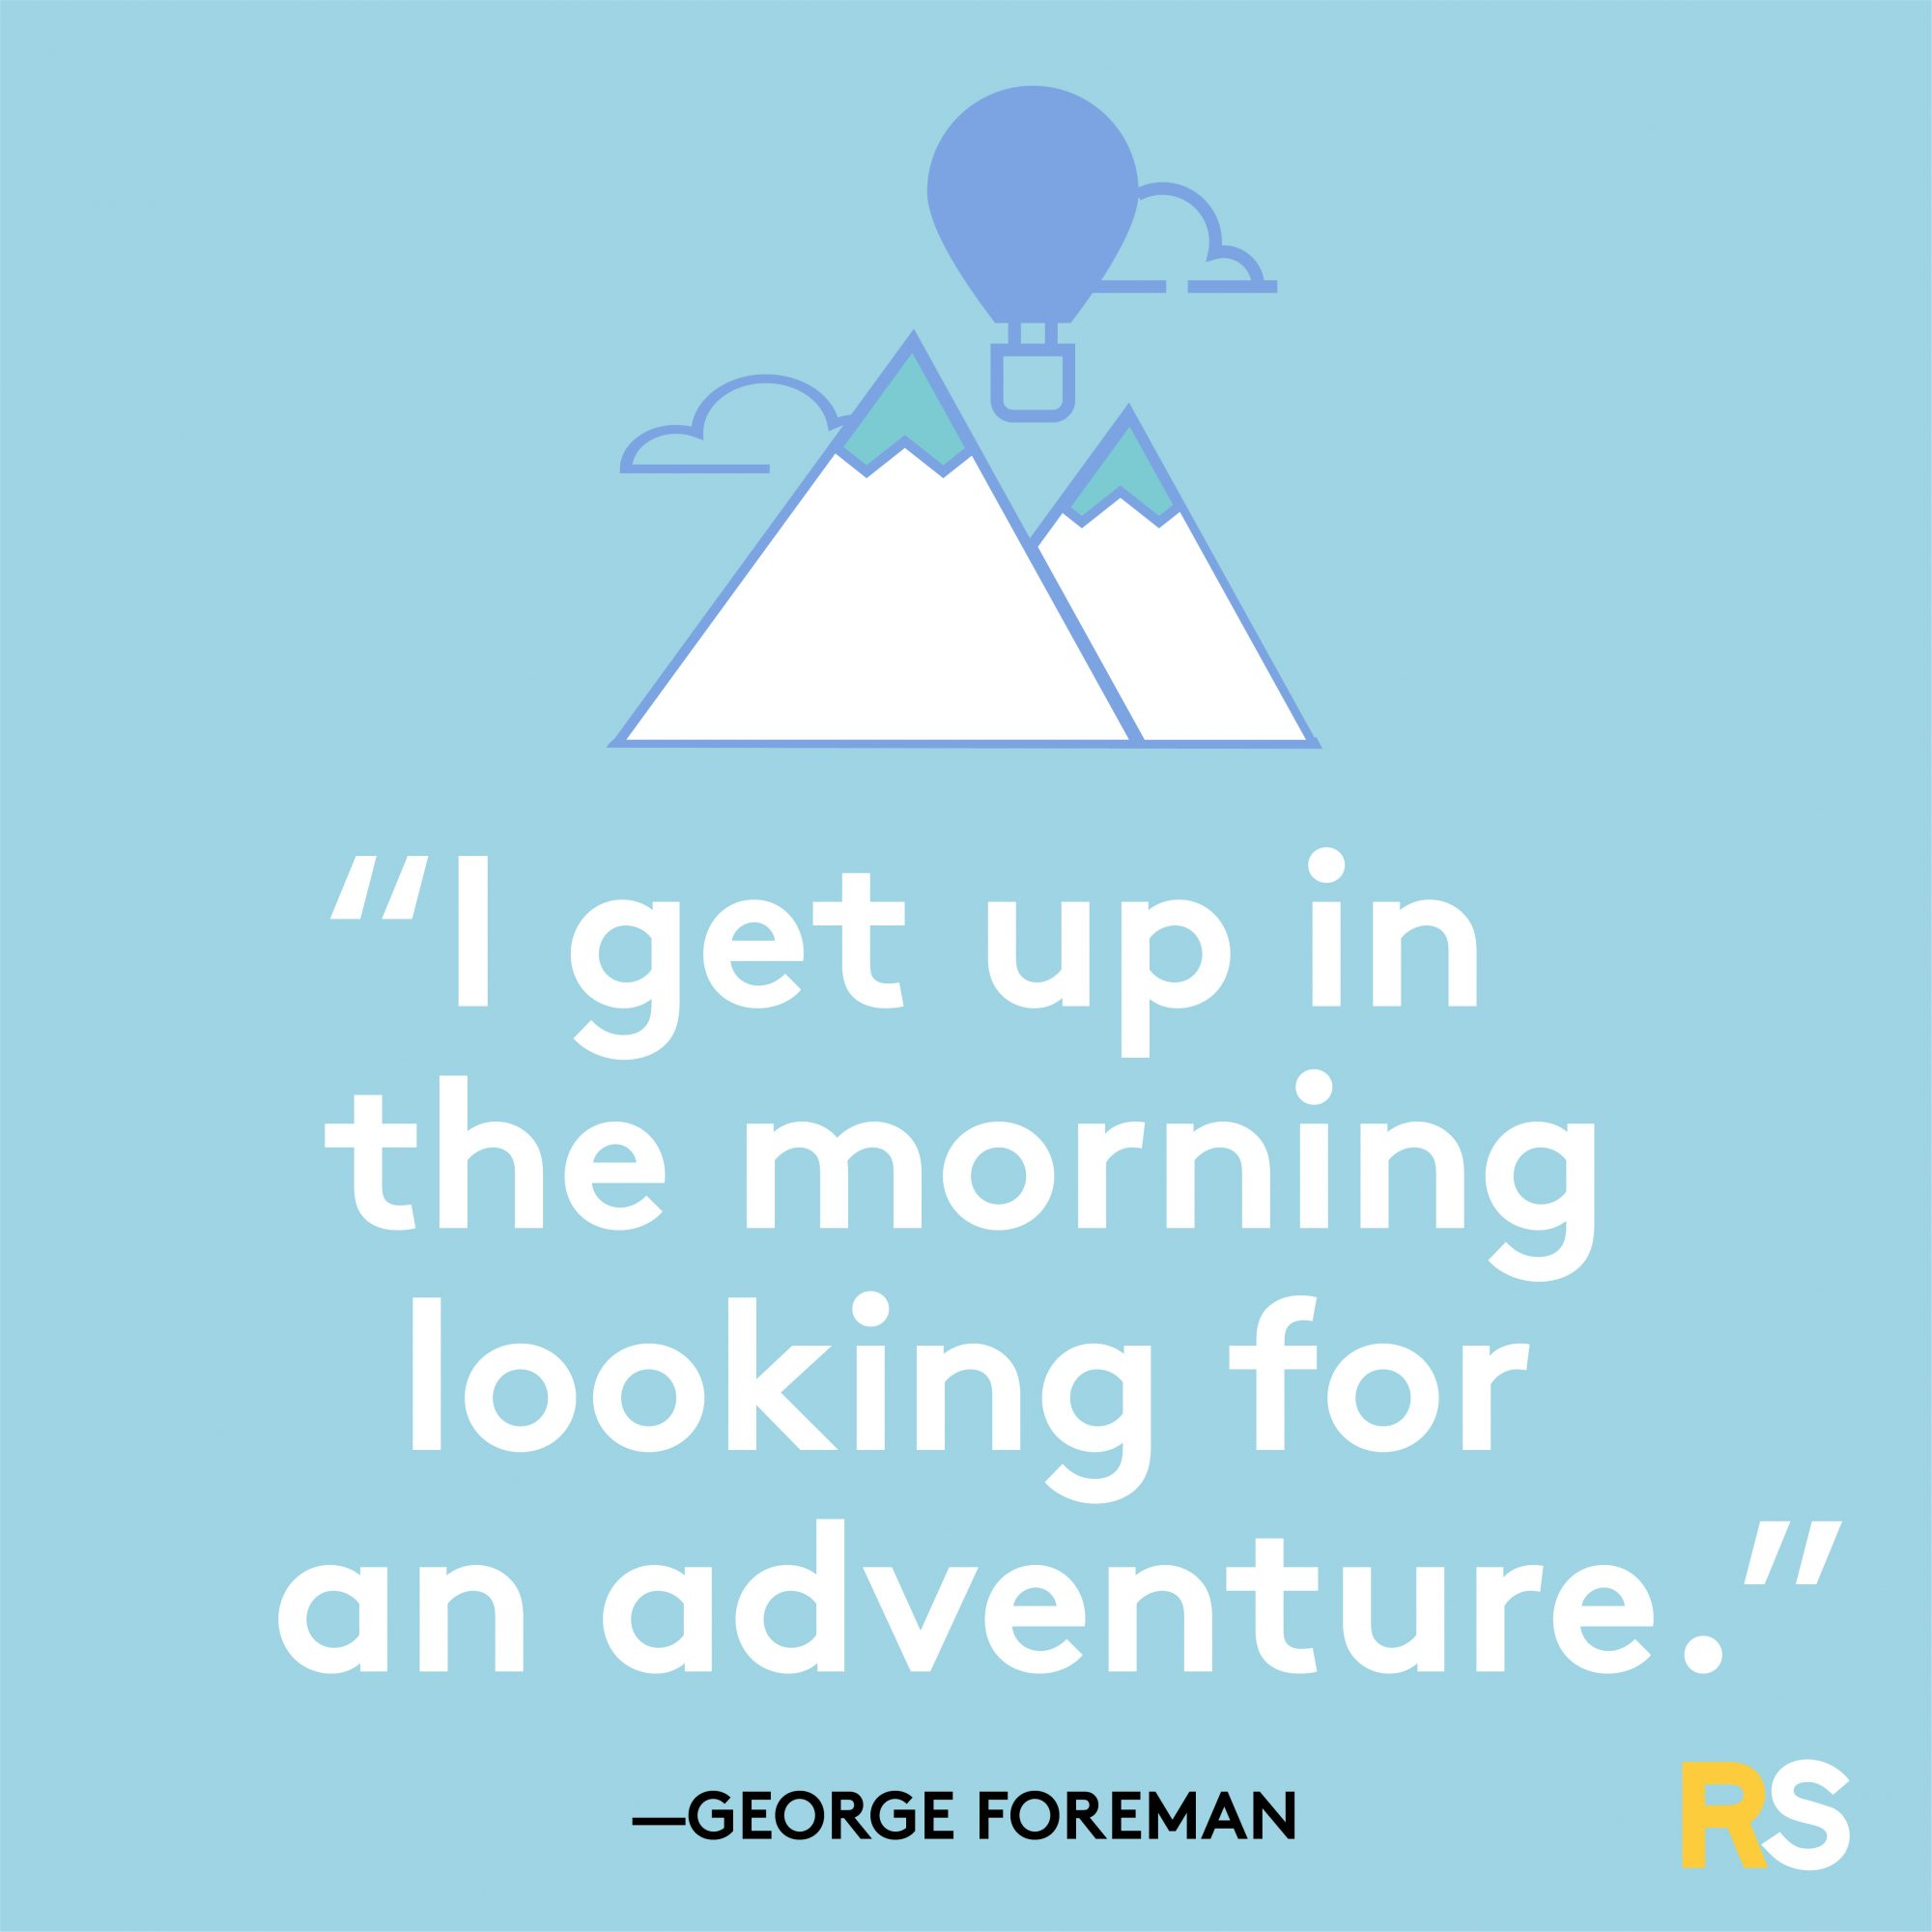 Morning Looking for an Adventure by George Foreman